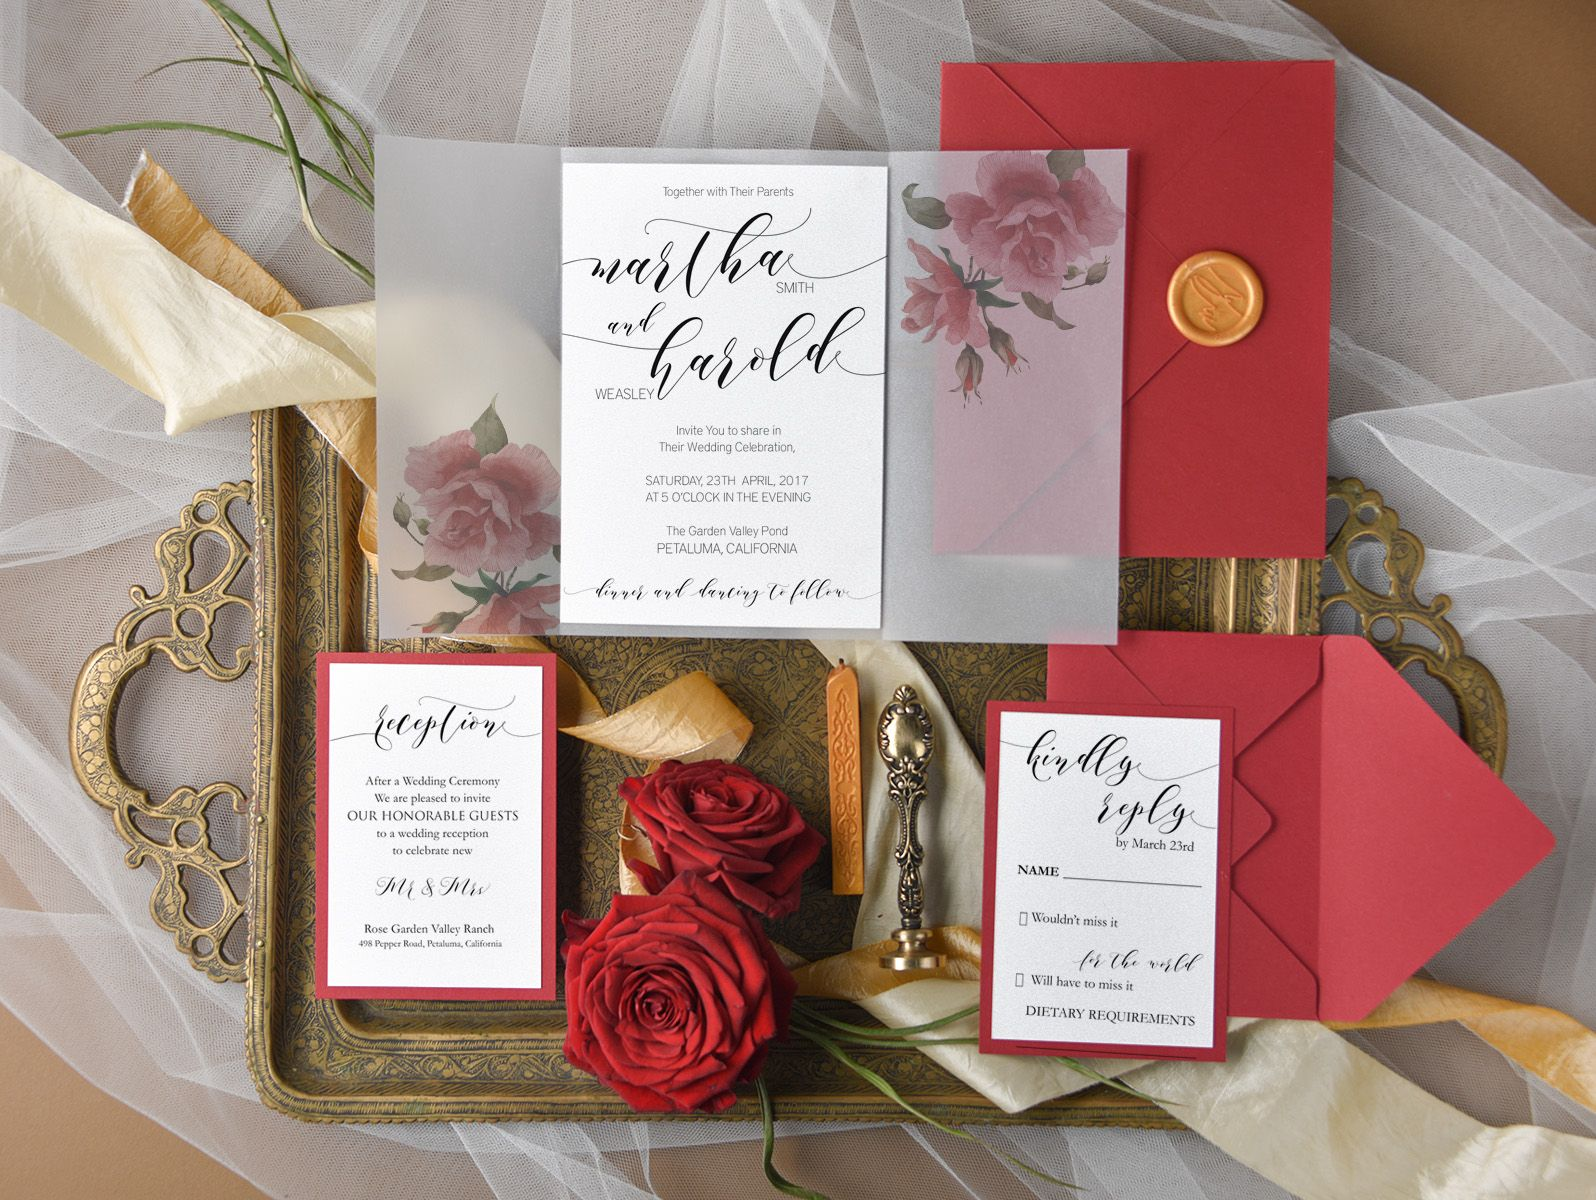 WEDDING INVITATIONS watercolor | Weddings